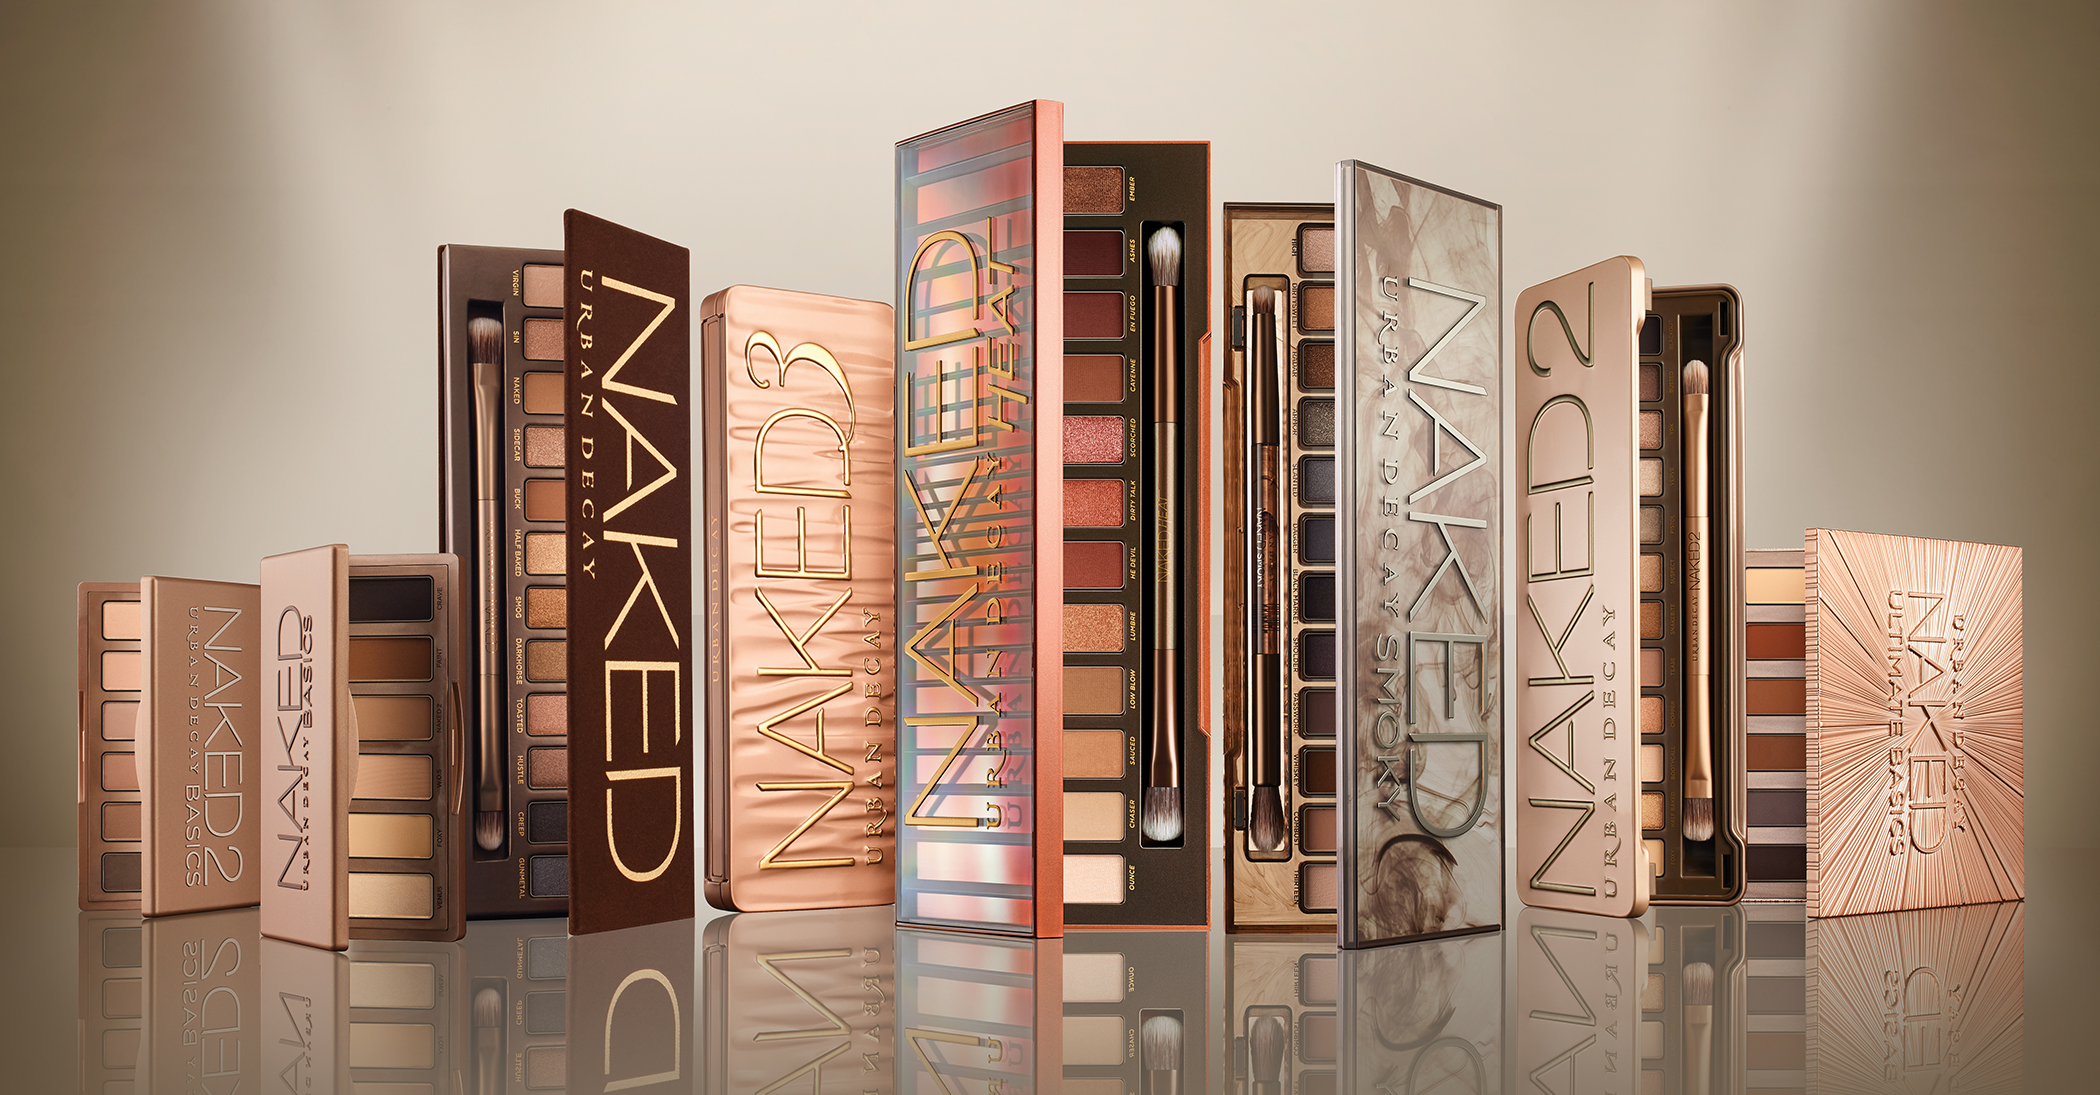 Naked_Palette_Family_Hero_Banner_Import_Brandshop_2100x1095px_01.jpg